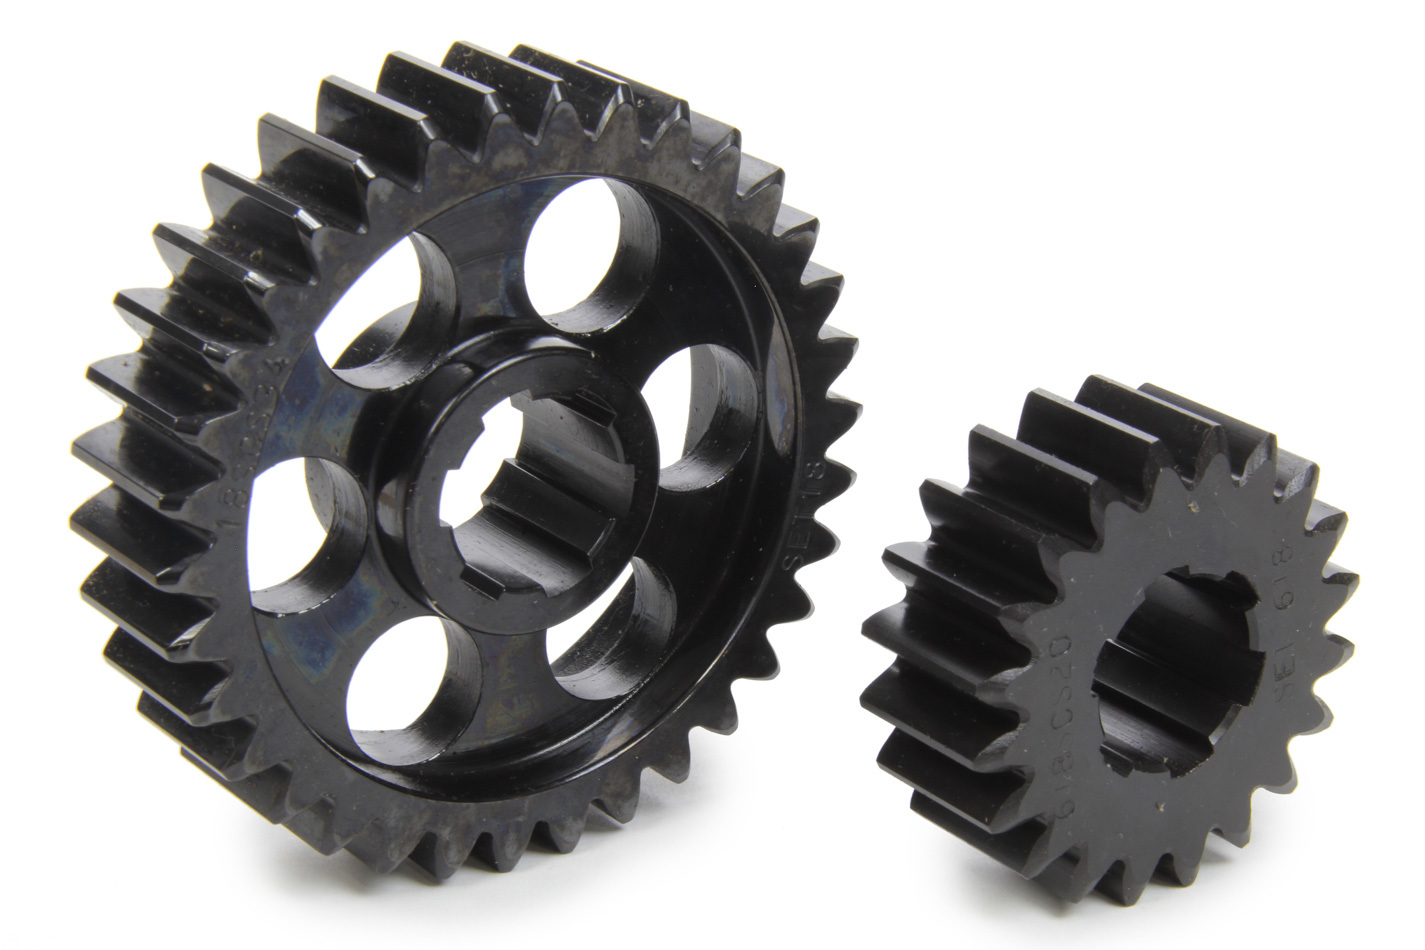 SCS Gears 618 Quick Change Gear Set, Professional, Set 618, 6 Spline, 4.11 Ratio 2.42 / 6.99, 4.33 Ratio 2.55 / 7.36, Steel, Each